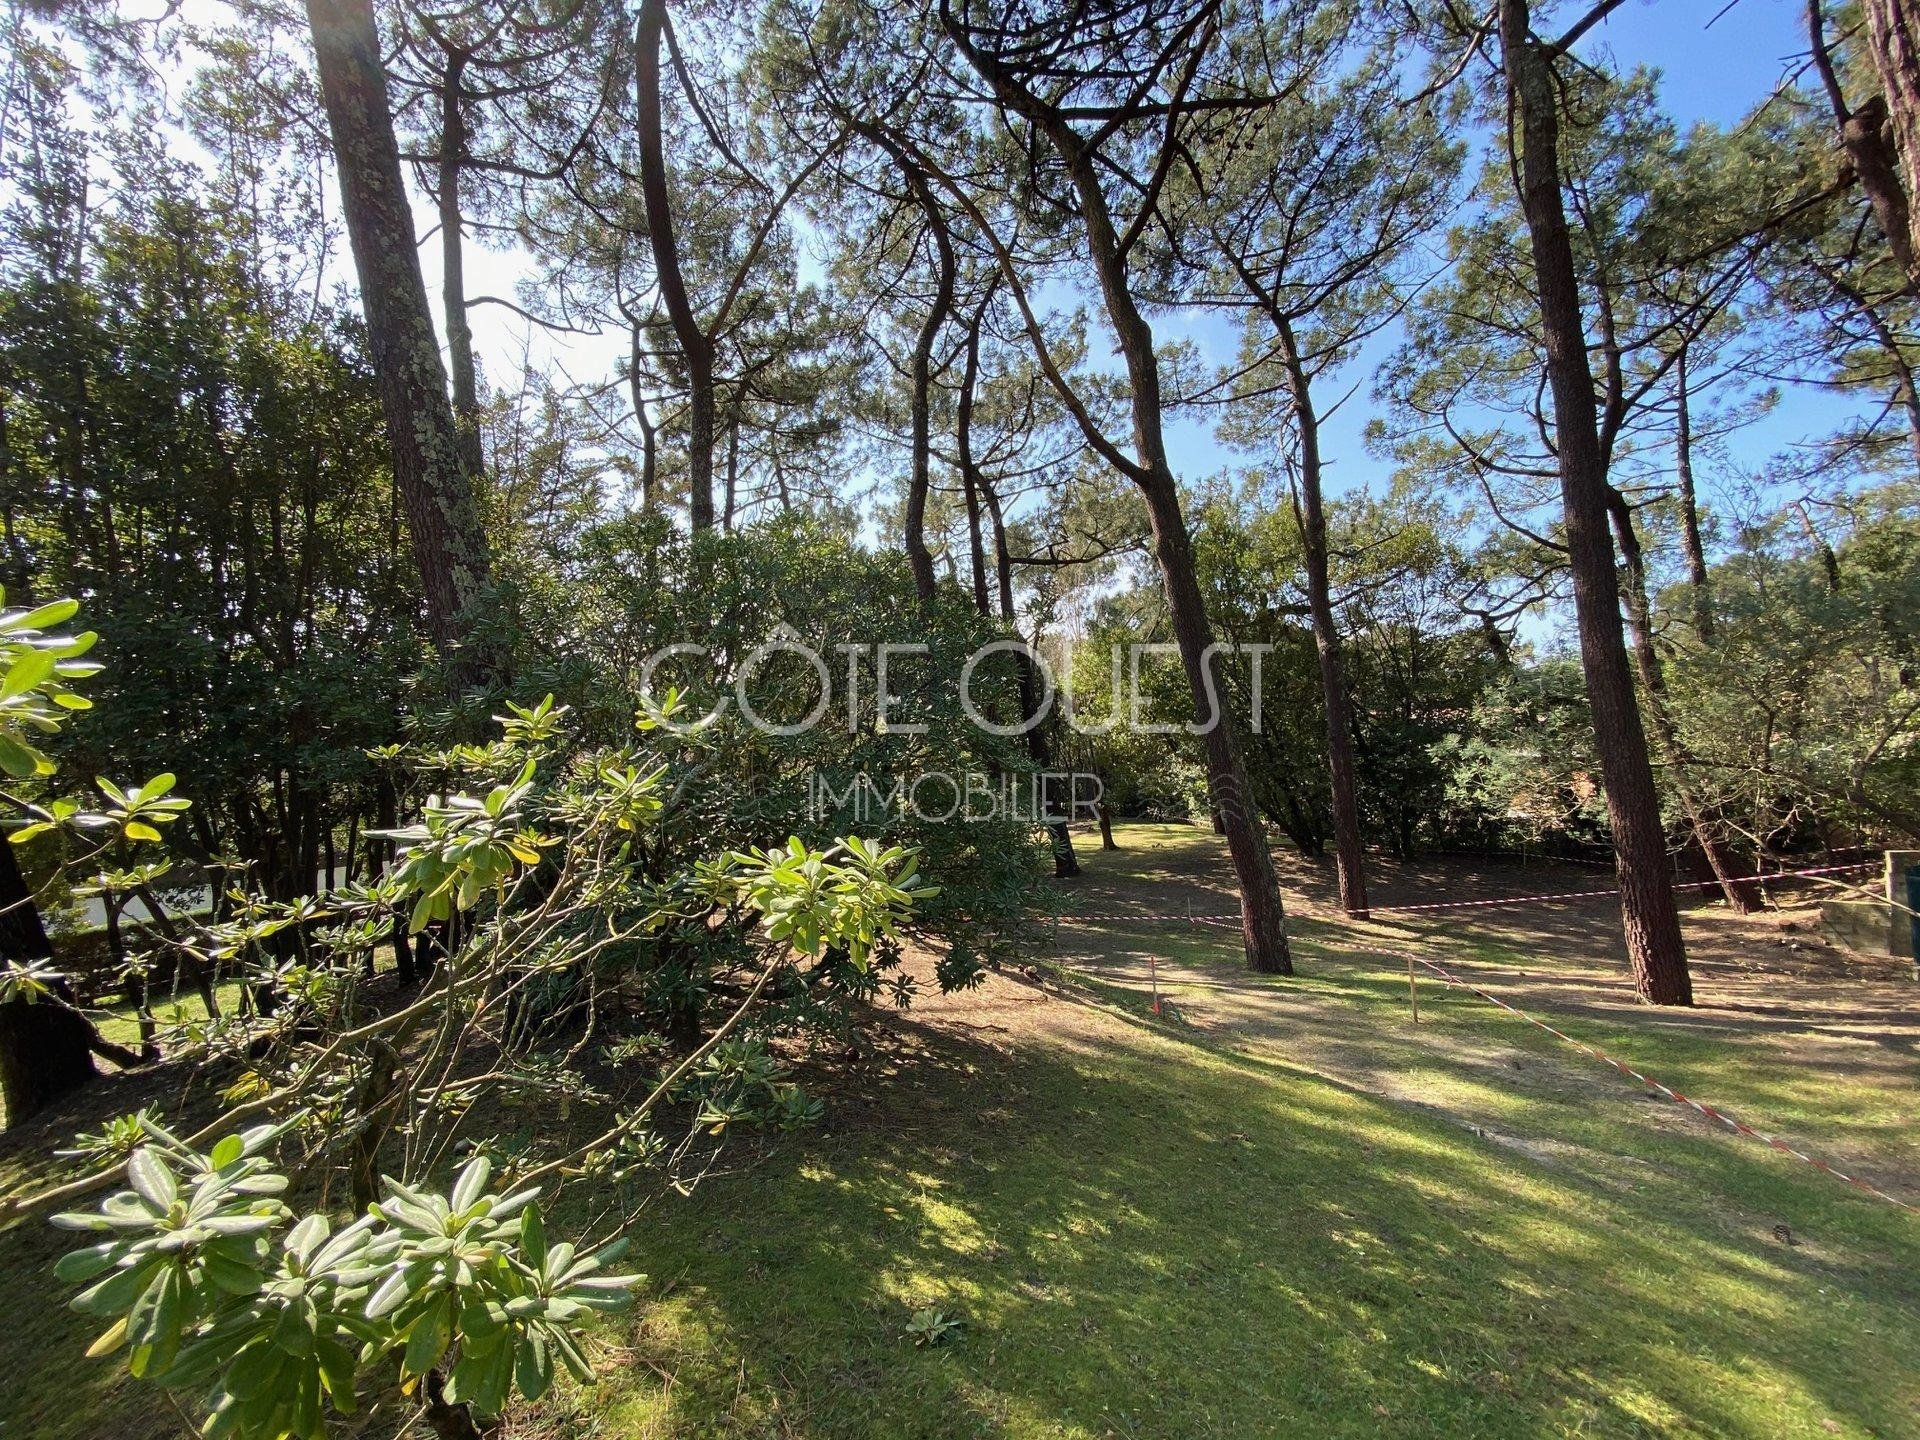 AN 860 SQM PLOT IN ANGLET CHIBERTA